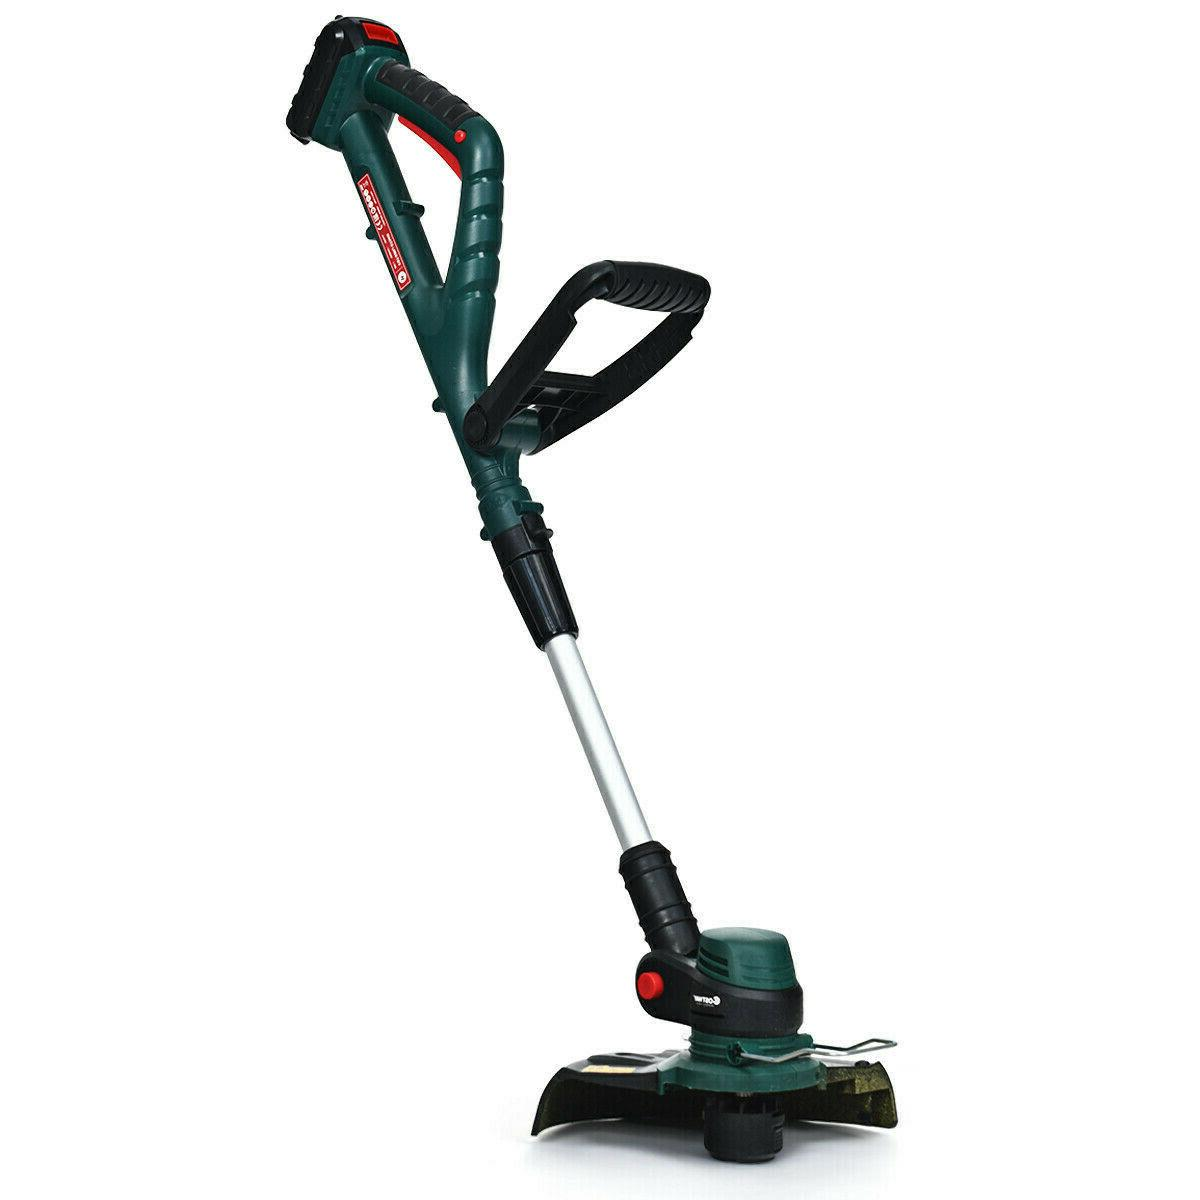 Cordless String Weed Eater Grass Battery